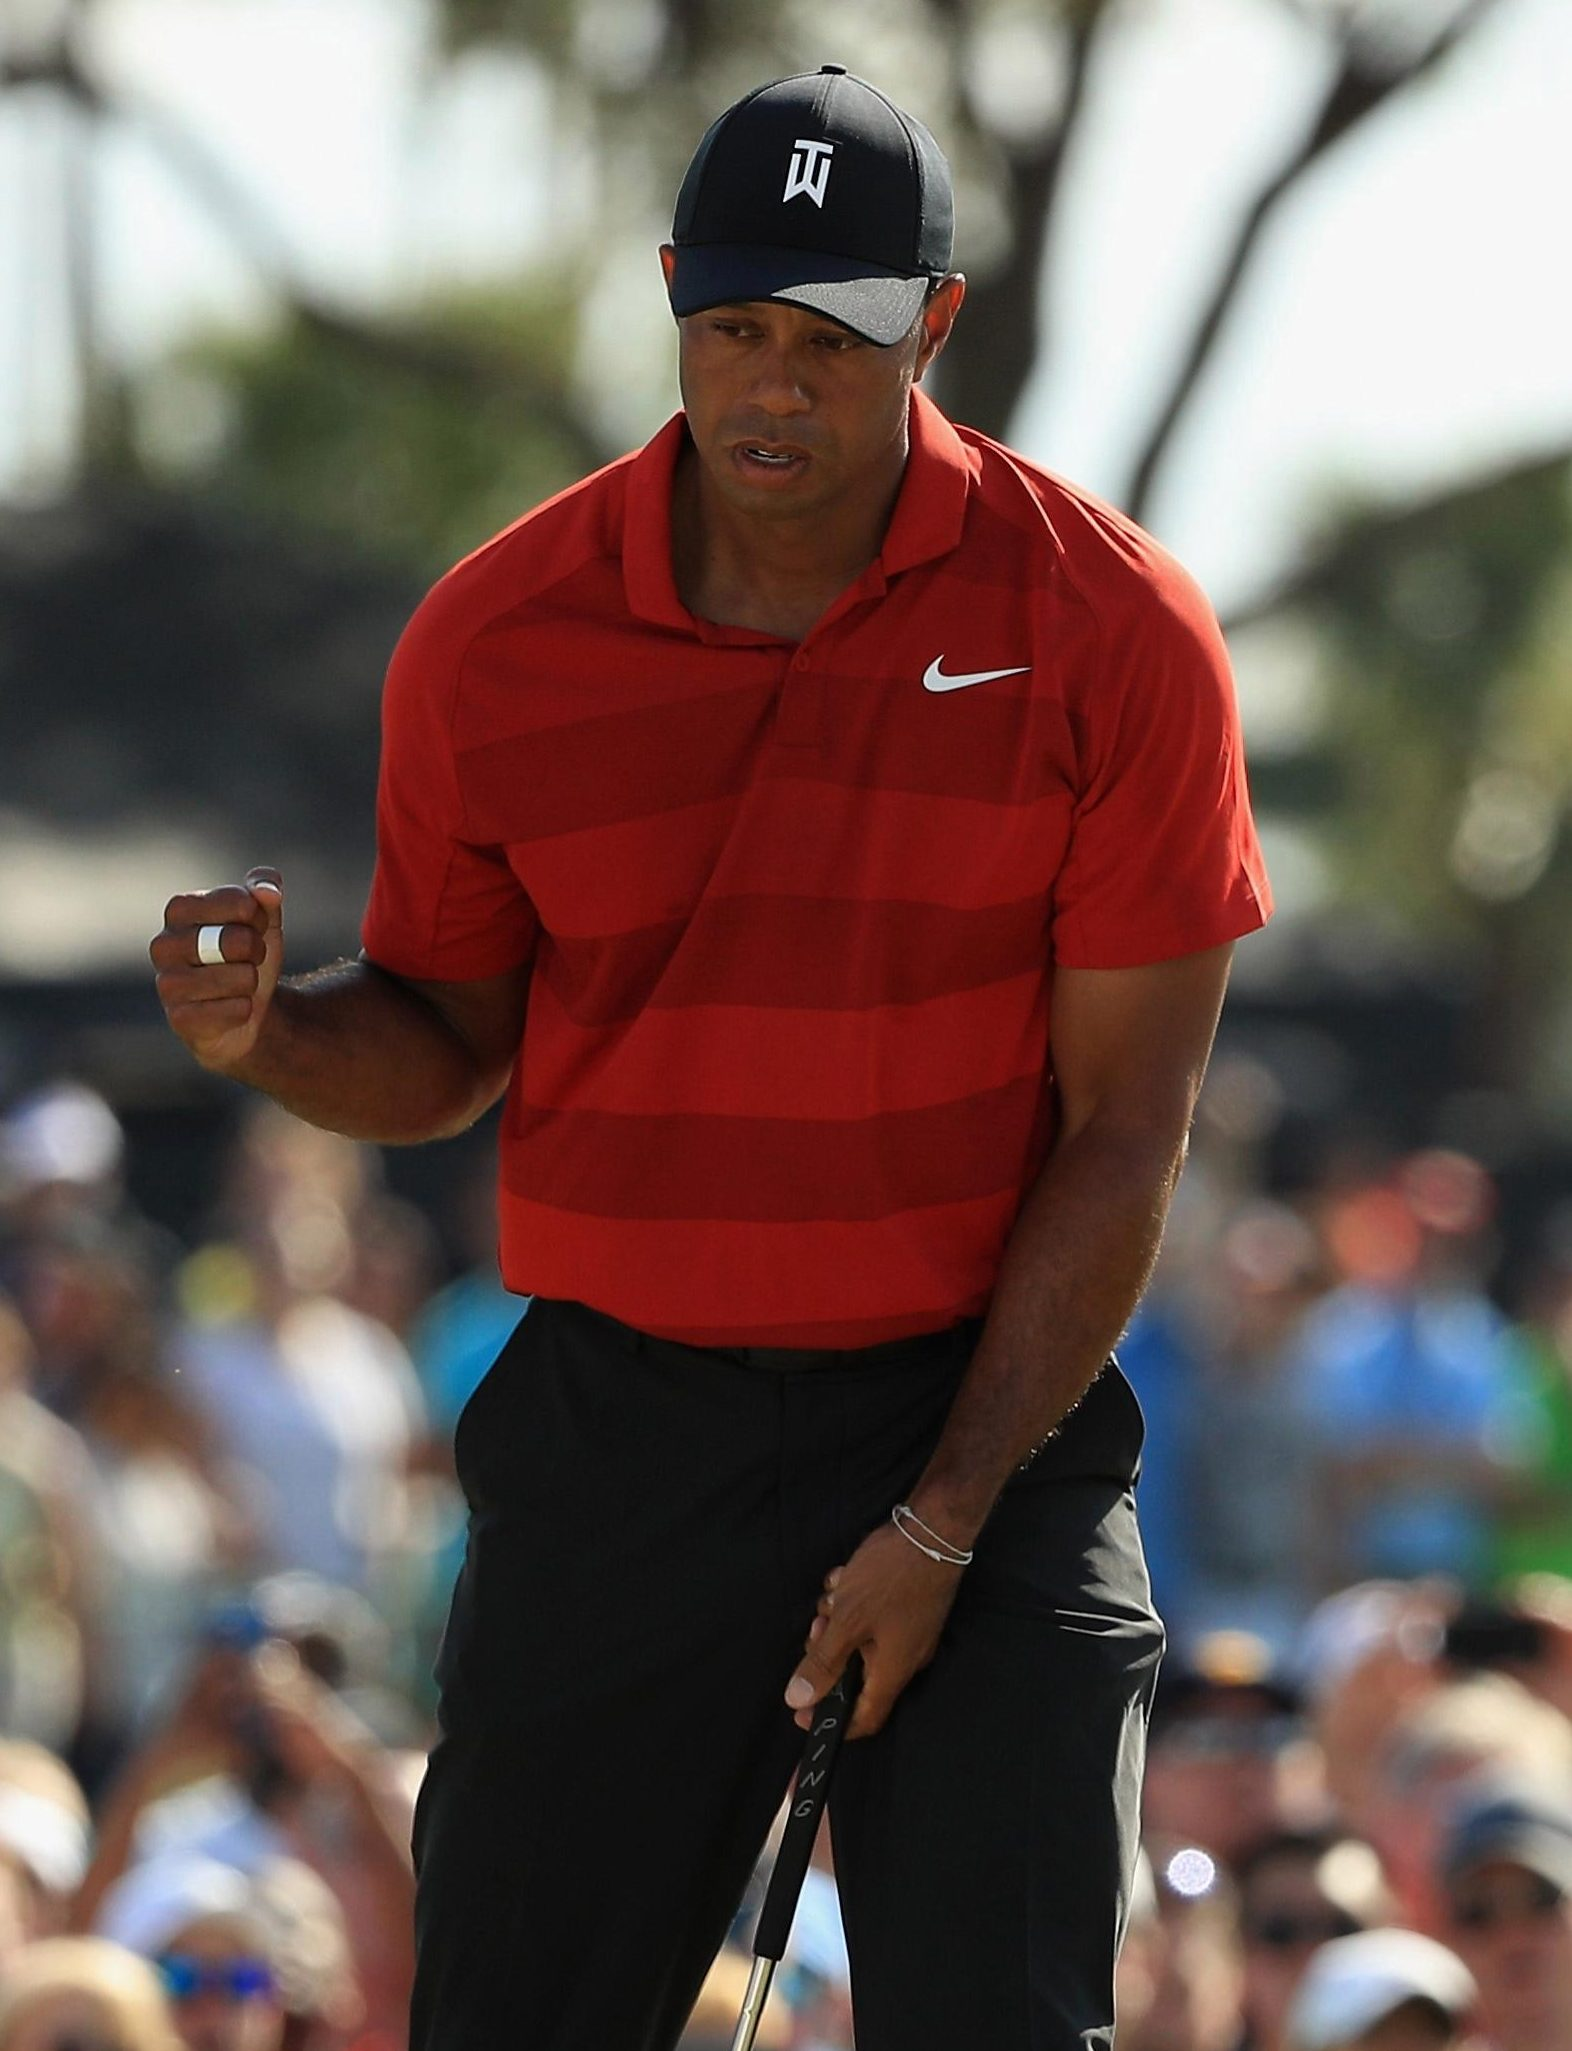 Tiger Woods remarkable surge up the world rankings has him dreaming of a fifth green jacket